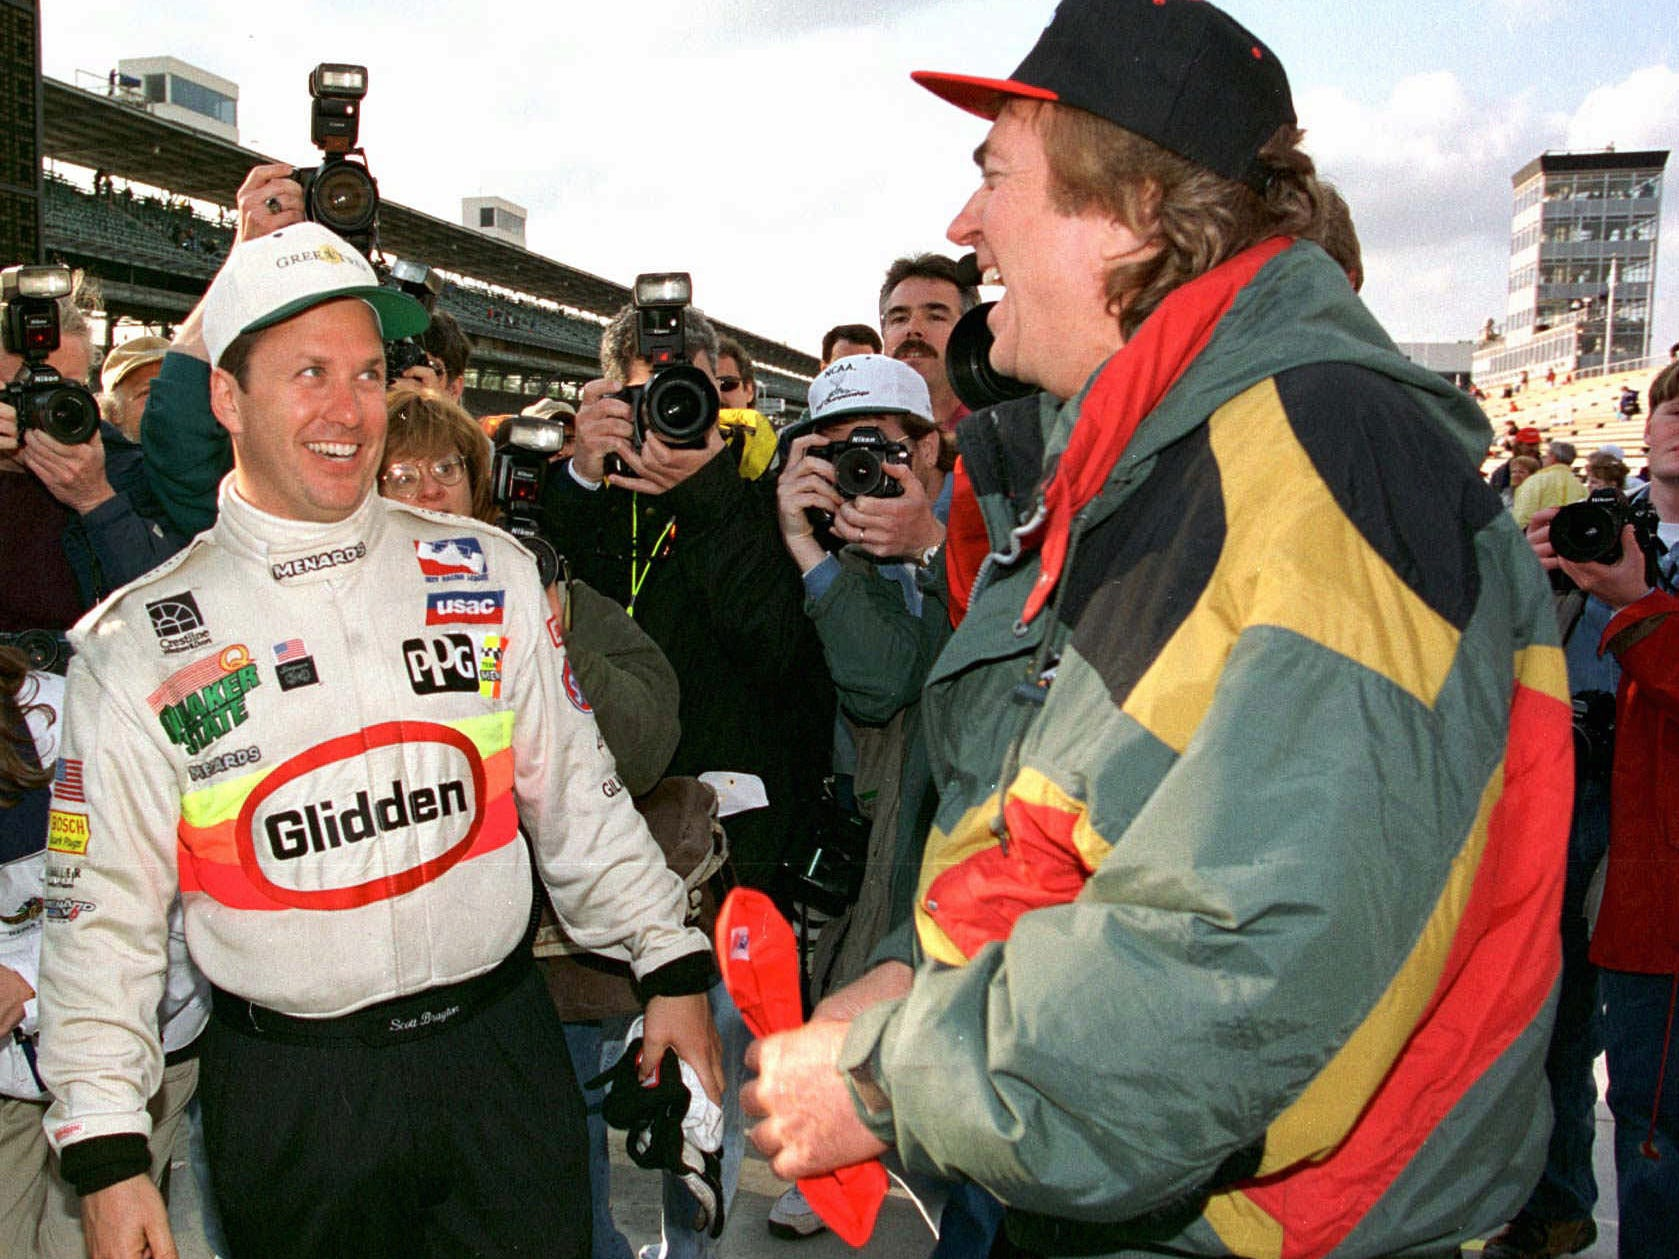 Scott Brayton reacts to team owner John Menard in the pit area after setting a new four lap track record and securing the pole for the 80th running of the Indianapolis 500 in 1996.  Brayton was killed in practice just a few days later.